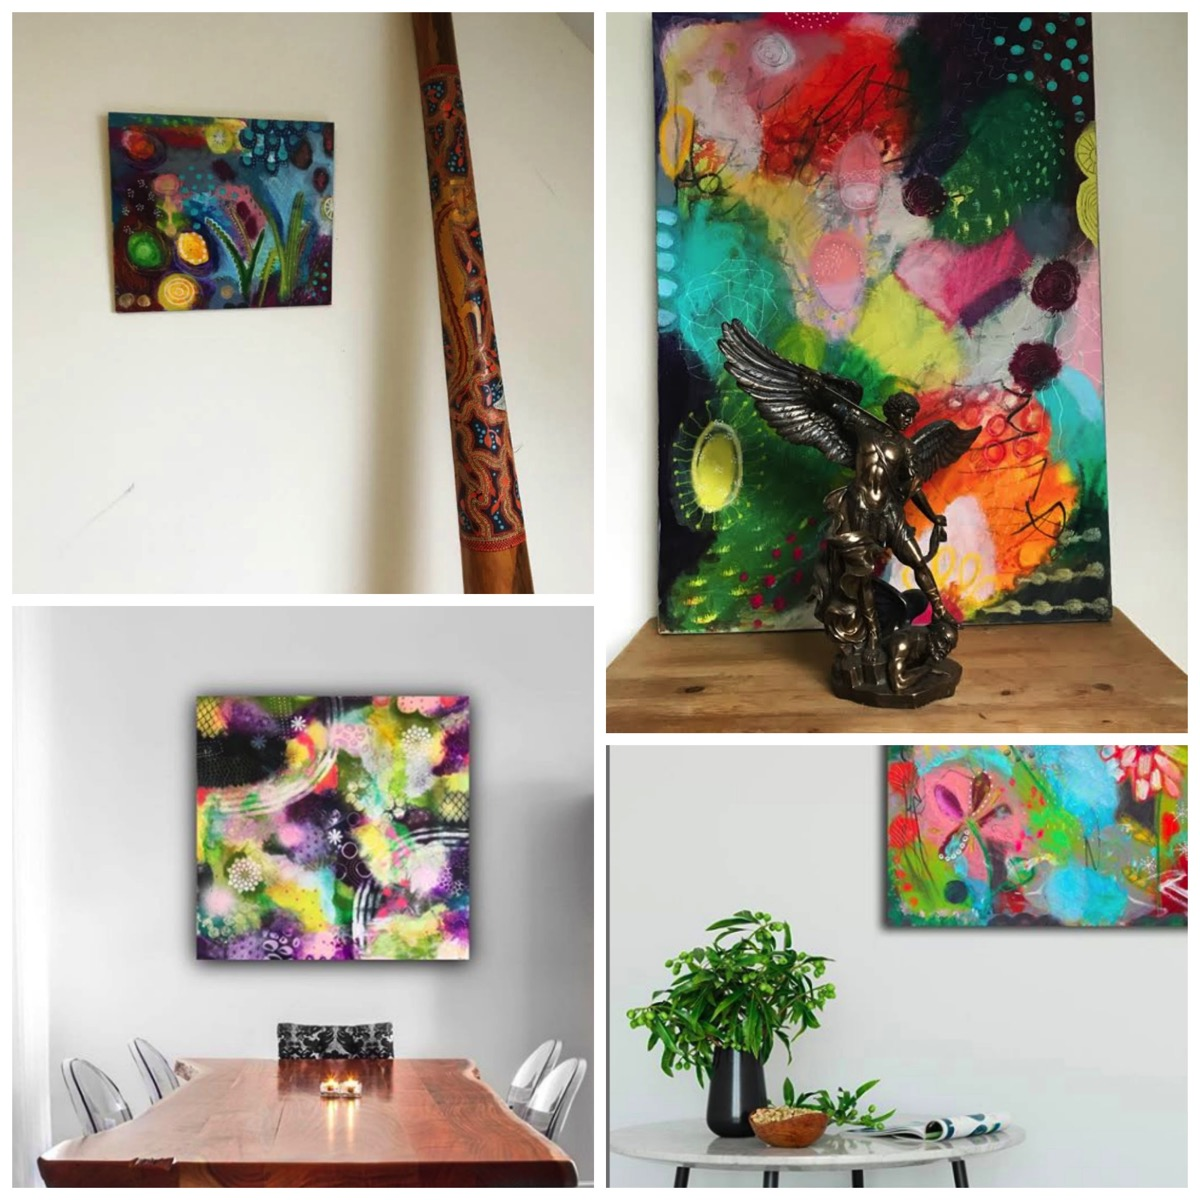 Sussane kurwig colorful mixed media art interview questions